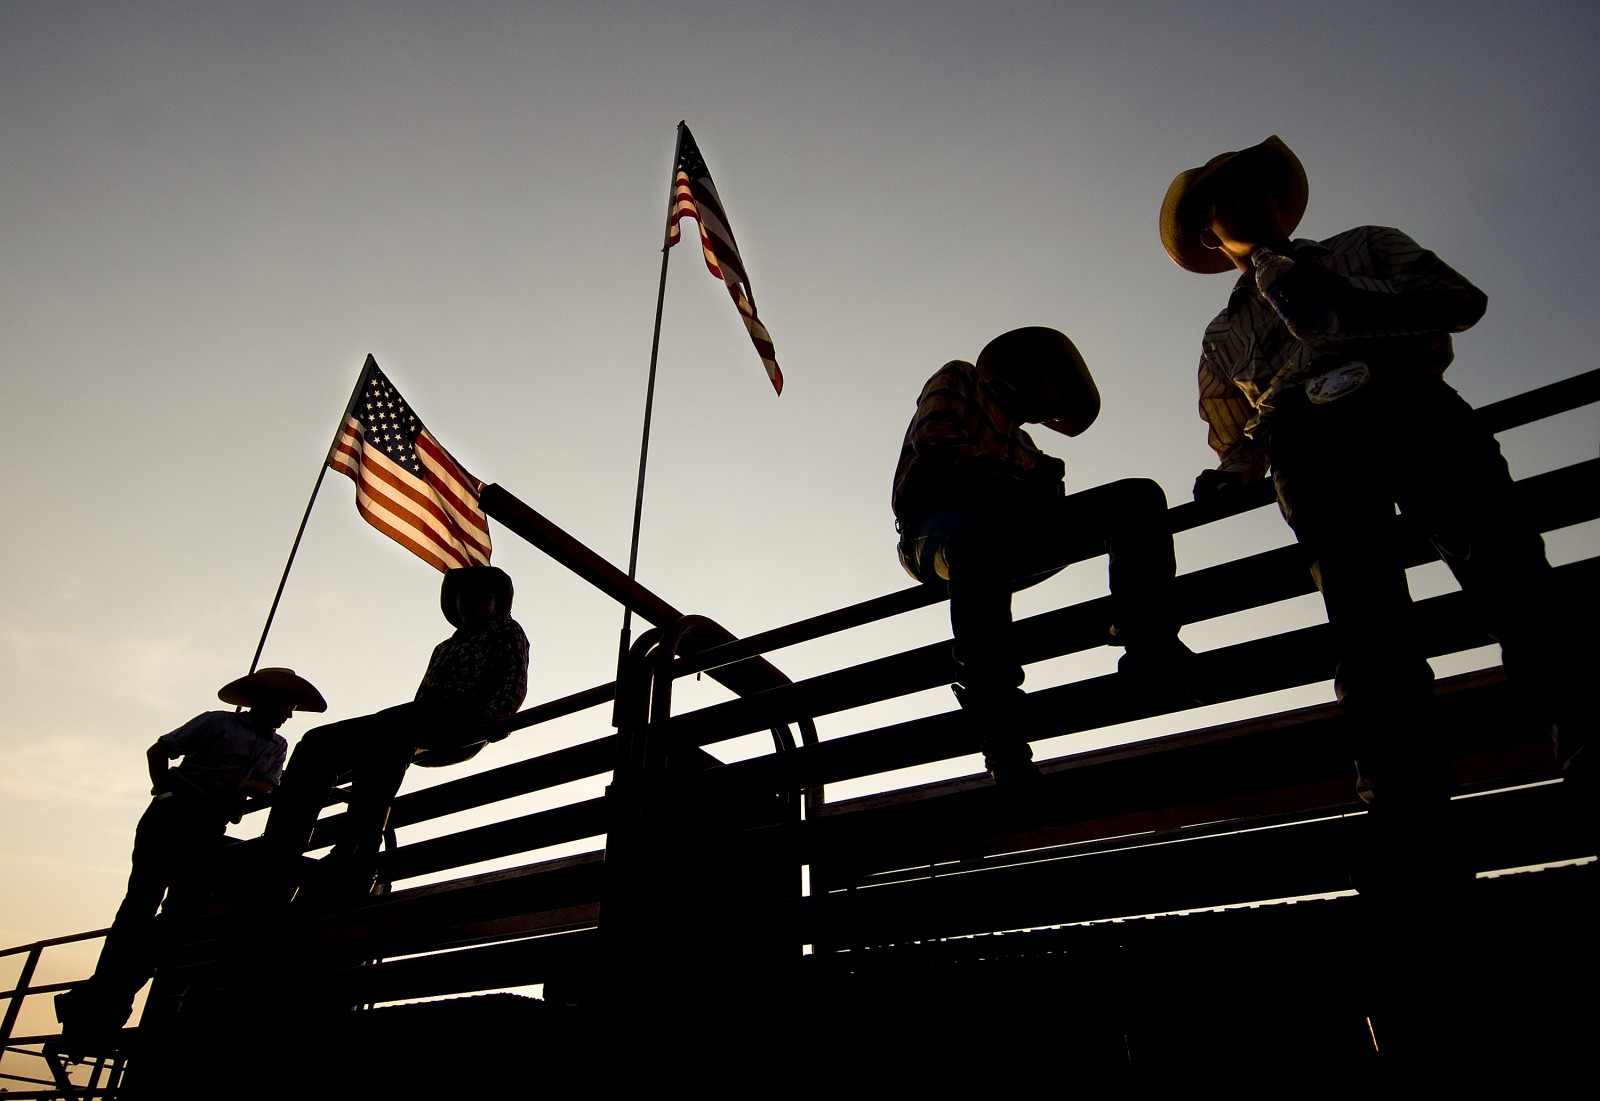 Cowboys prepare for a rodeo as part of the Rockingham County Fair in Harrisonburg, Va. in 2007.